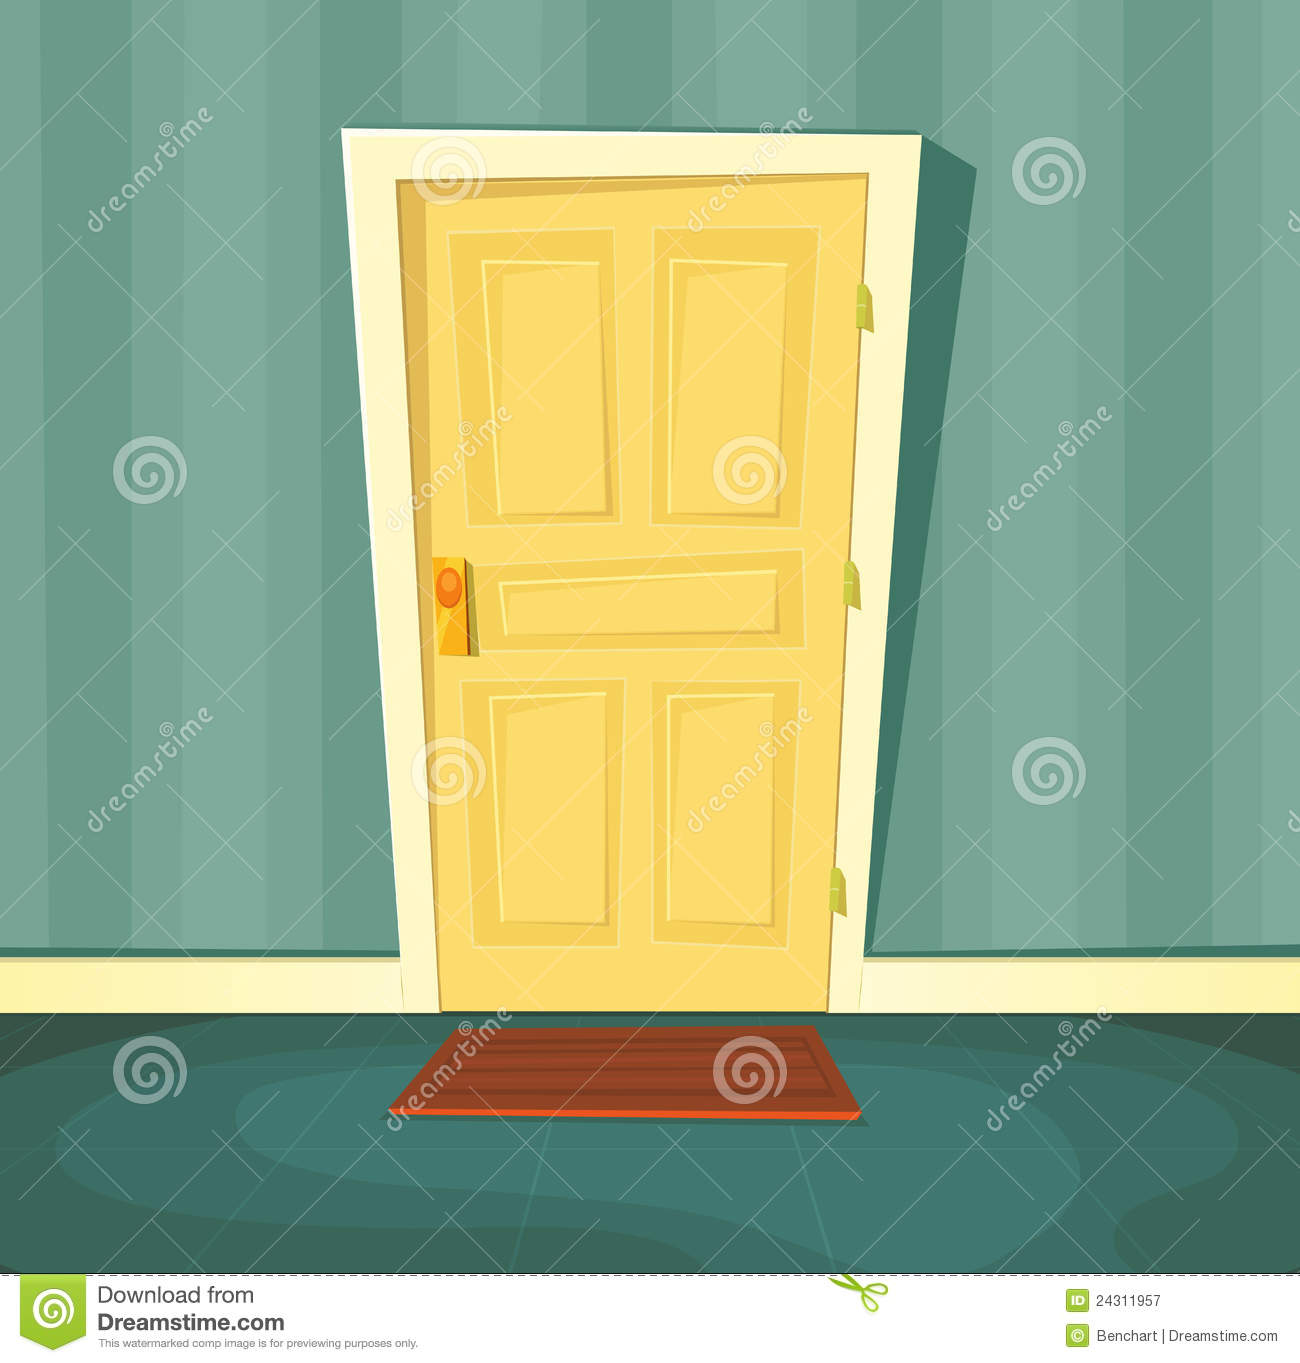 Front door clipart - Cartoon Door Front